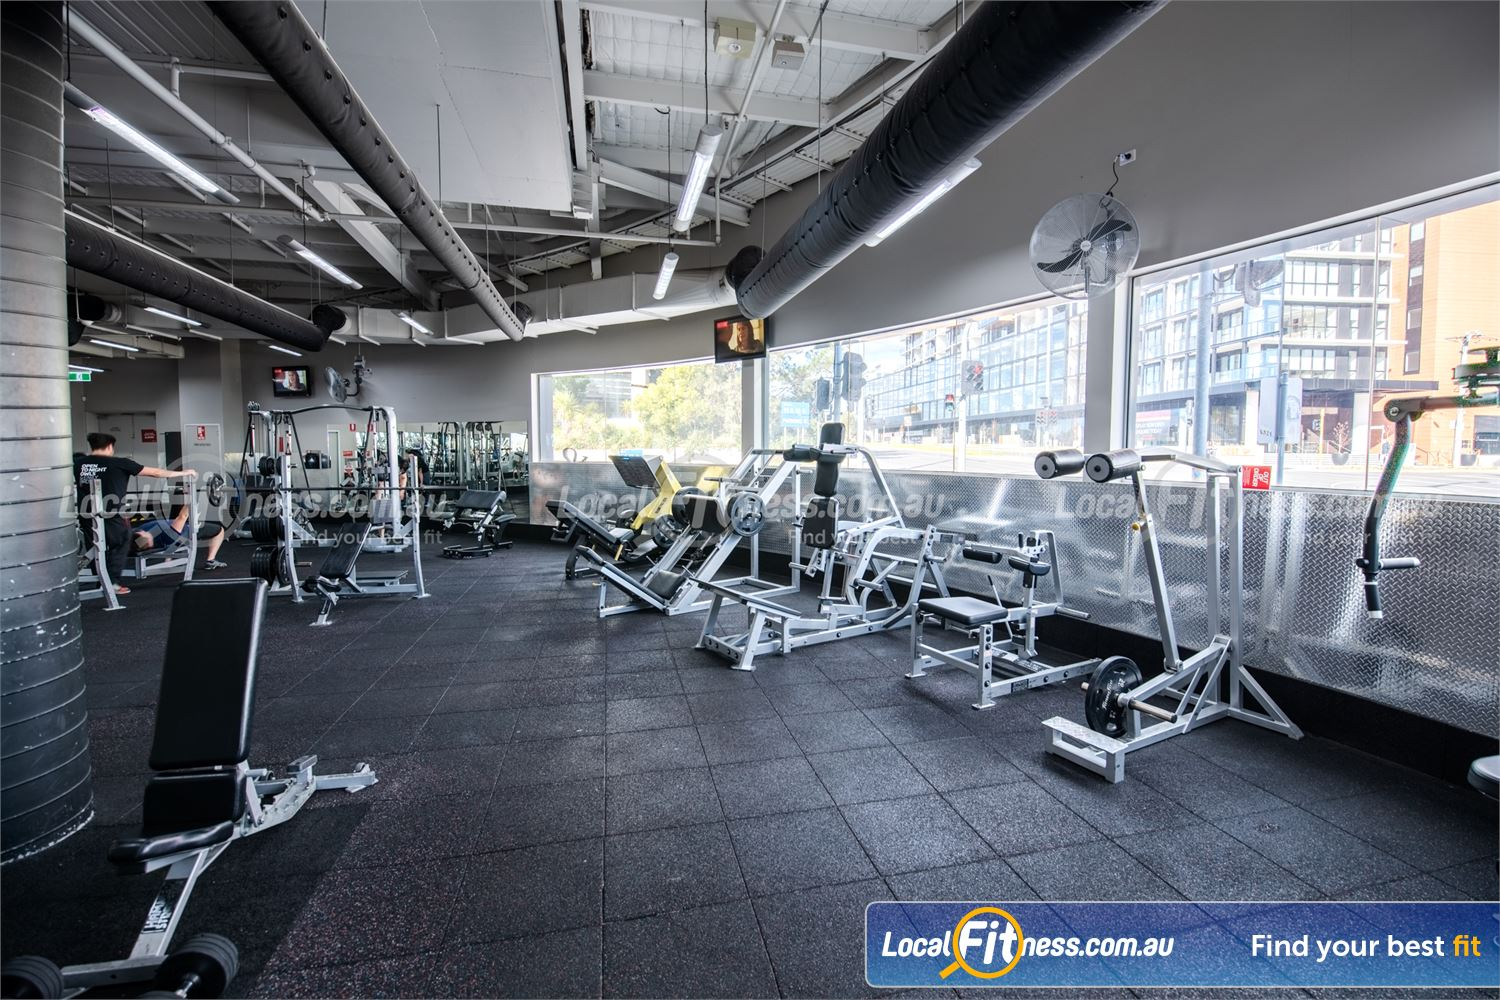 Fitness First Near Blackburn North The massive free-weights area located on the lower level.